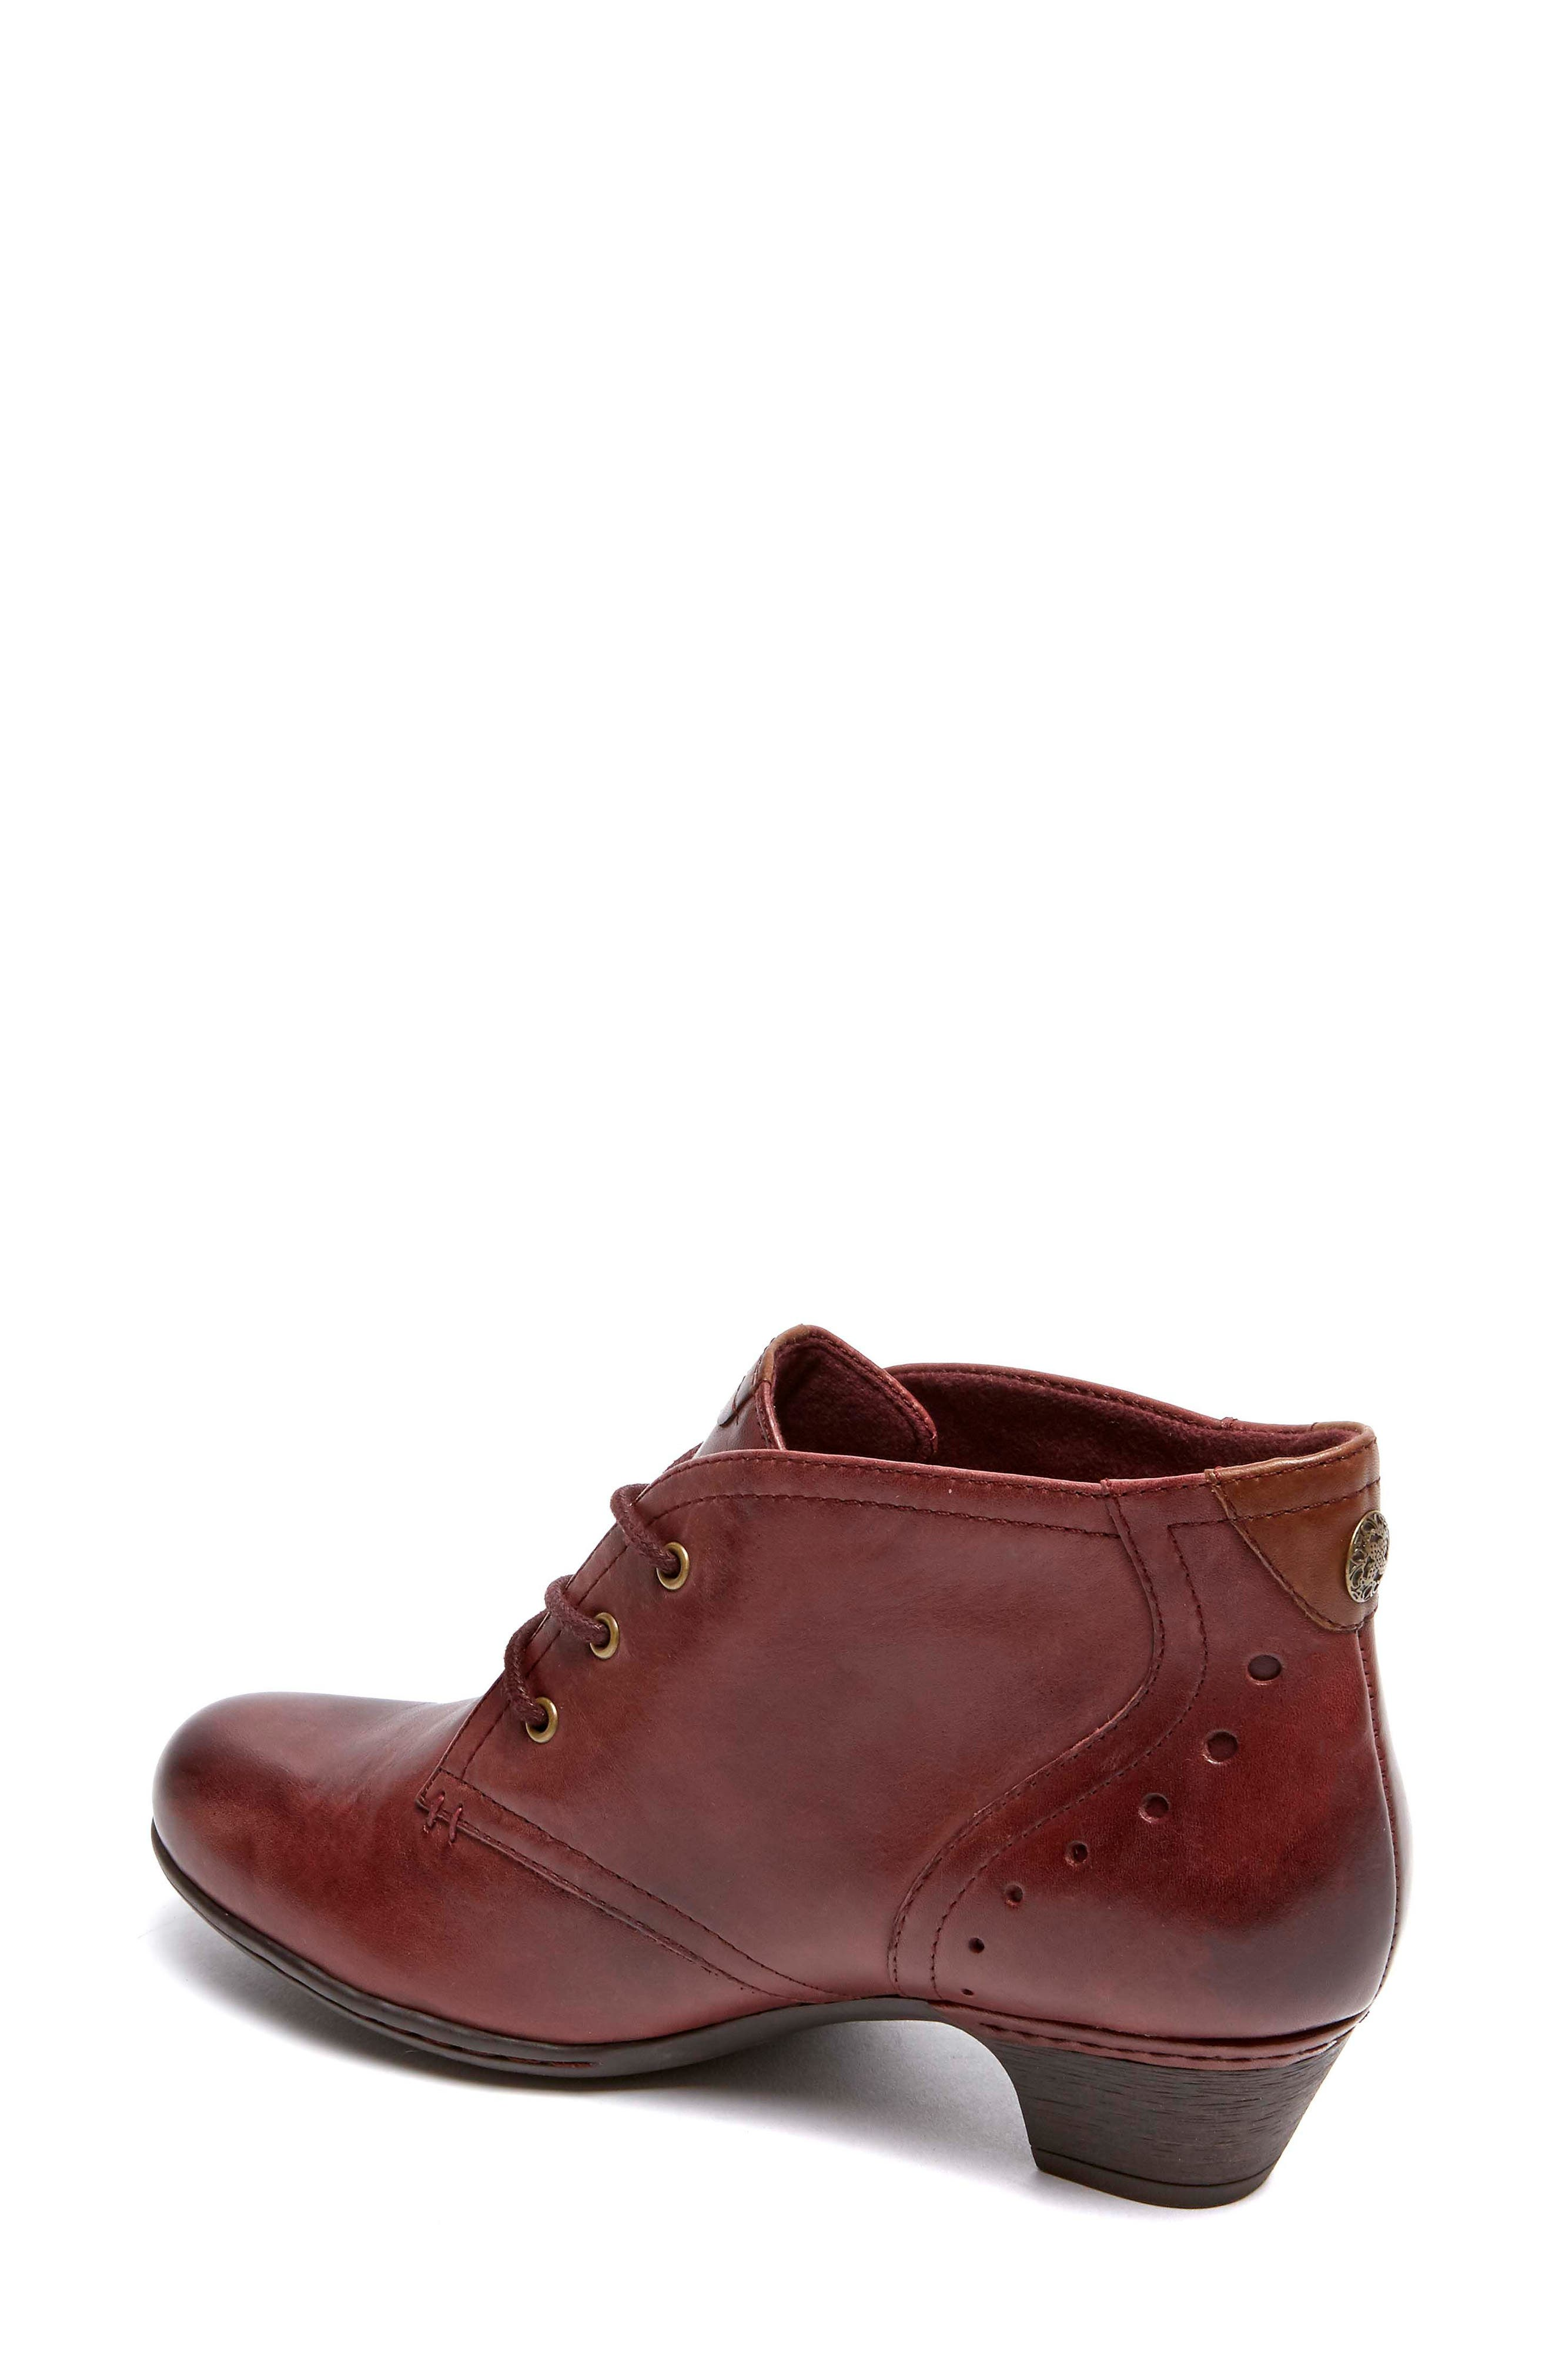 Aria Leather Boot,                             Alternate thumbnail 2, color,                             MERLOT LEATHER